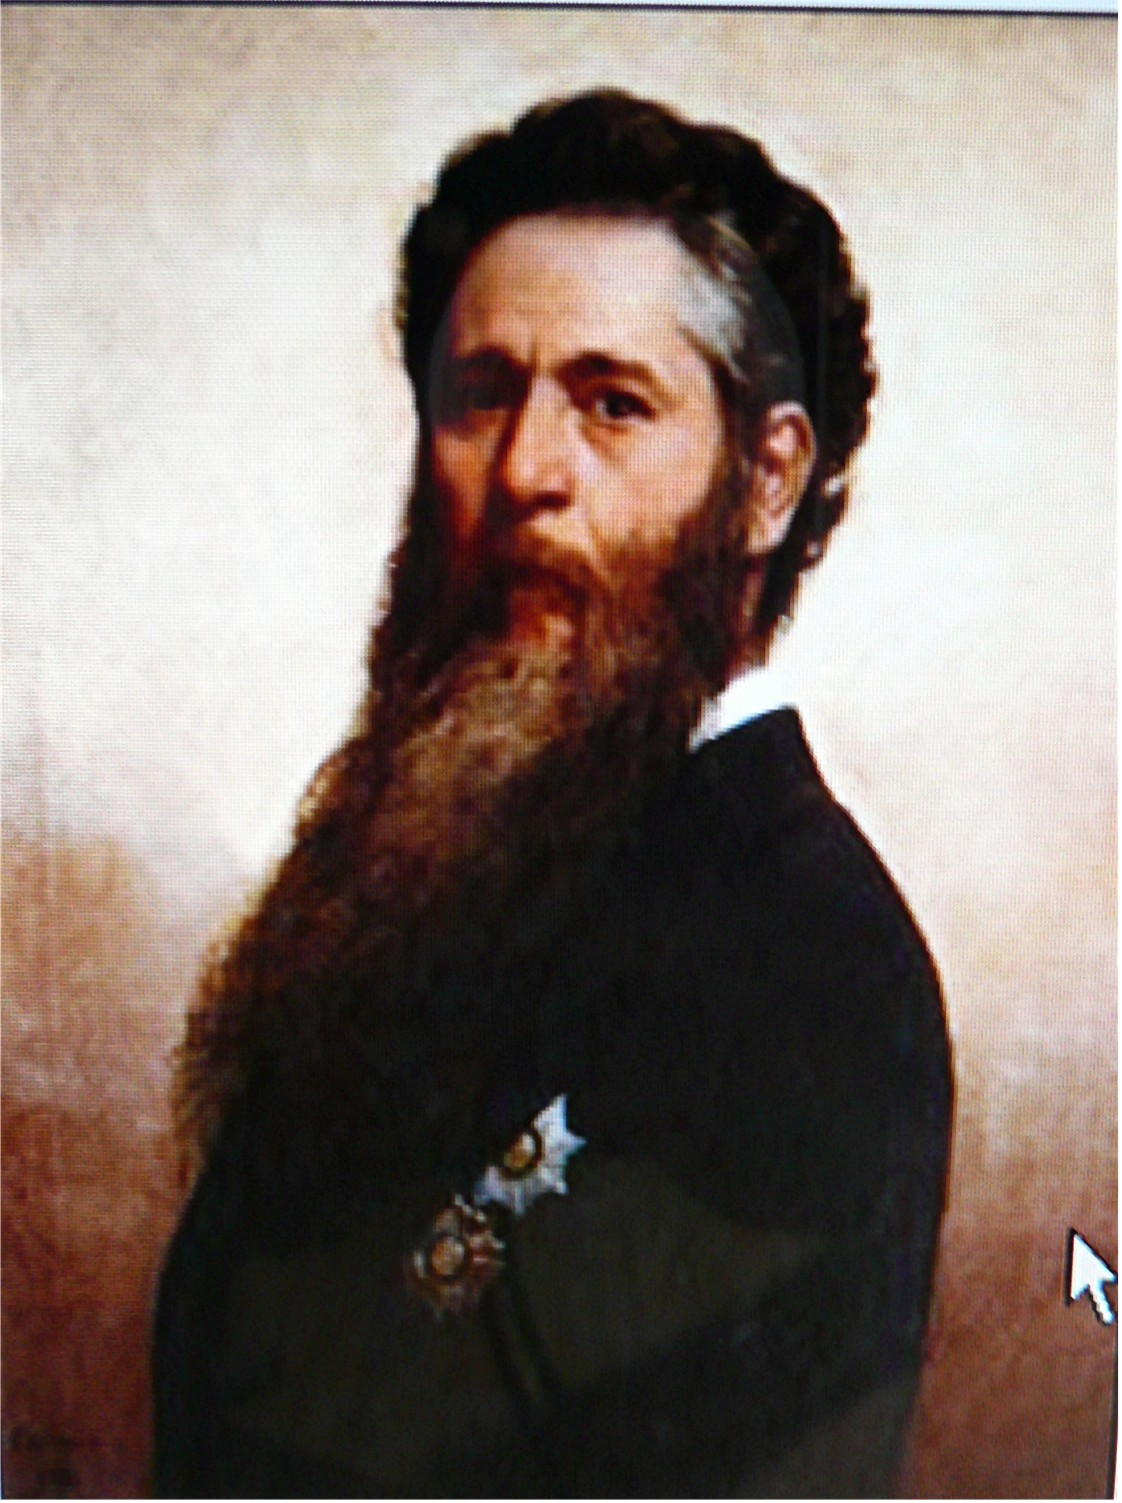 Image of Miguel Navarro Cañizares from Wikidata